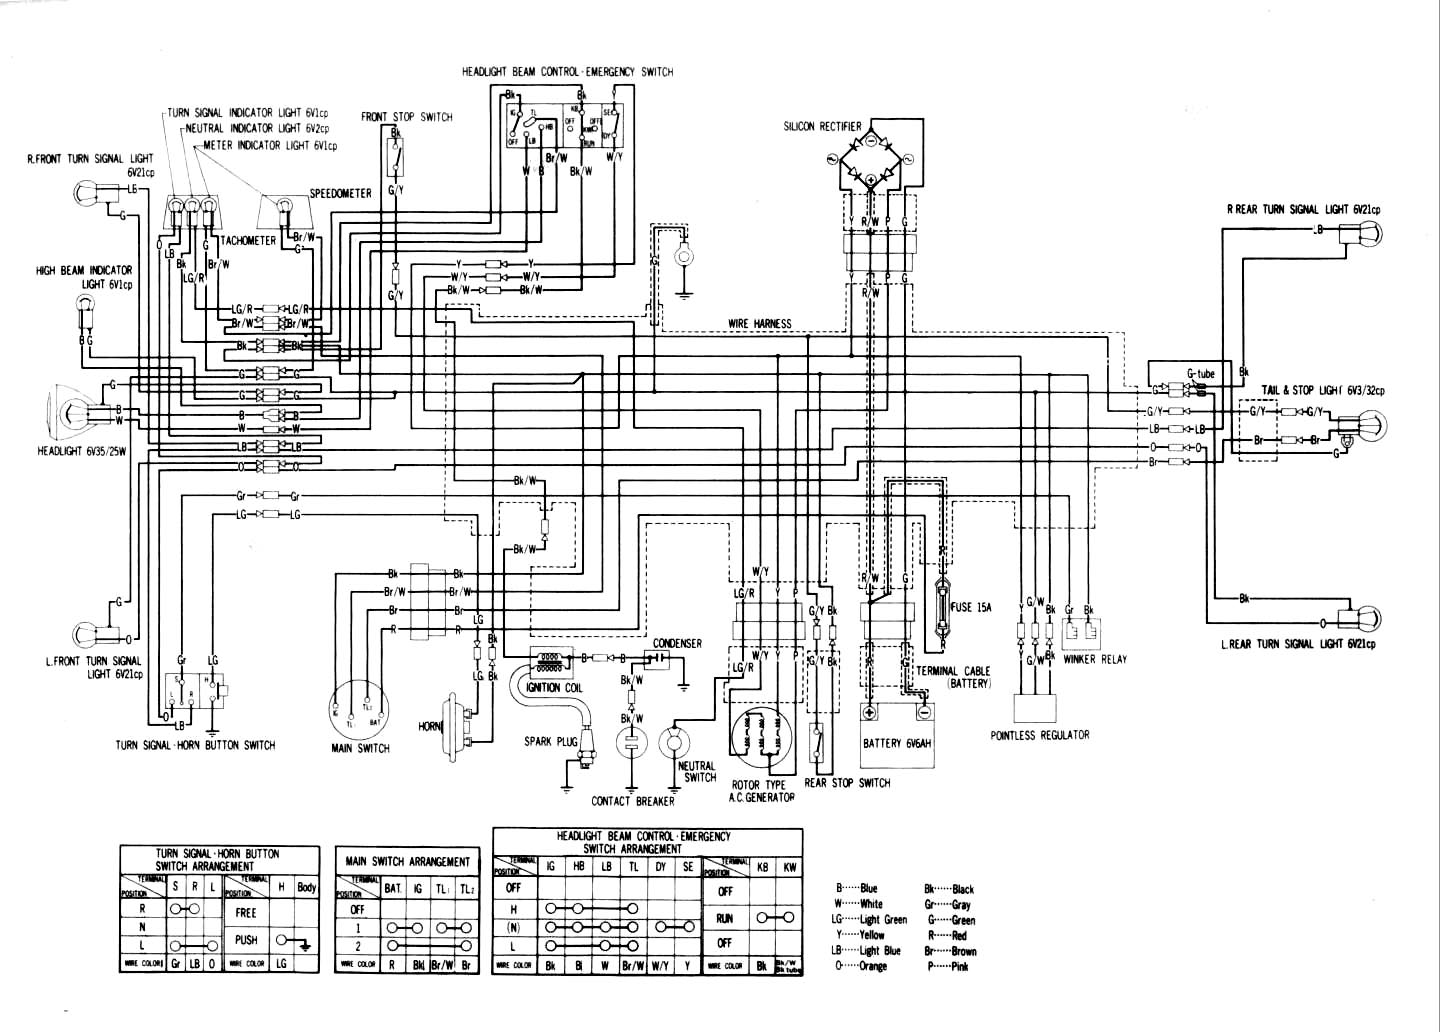 xl175 i have a 1978 honda xl 125 that i cannot get a spark on, the 1978 honda xl 125 wiring diagram at readyjetset.co